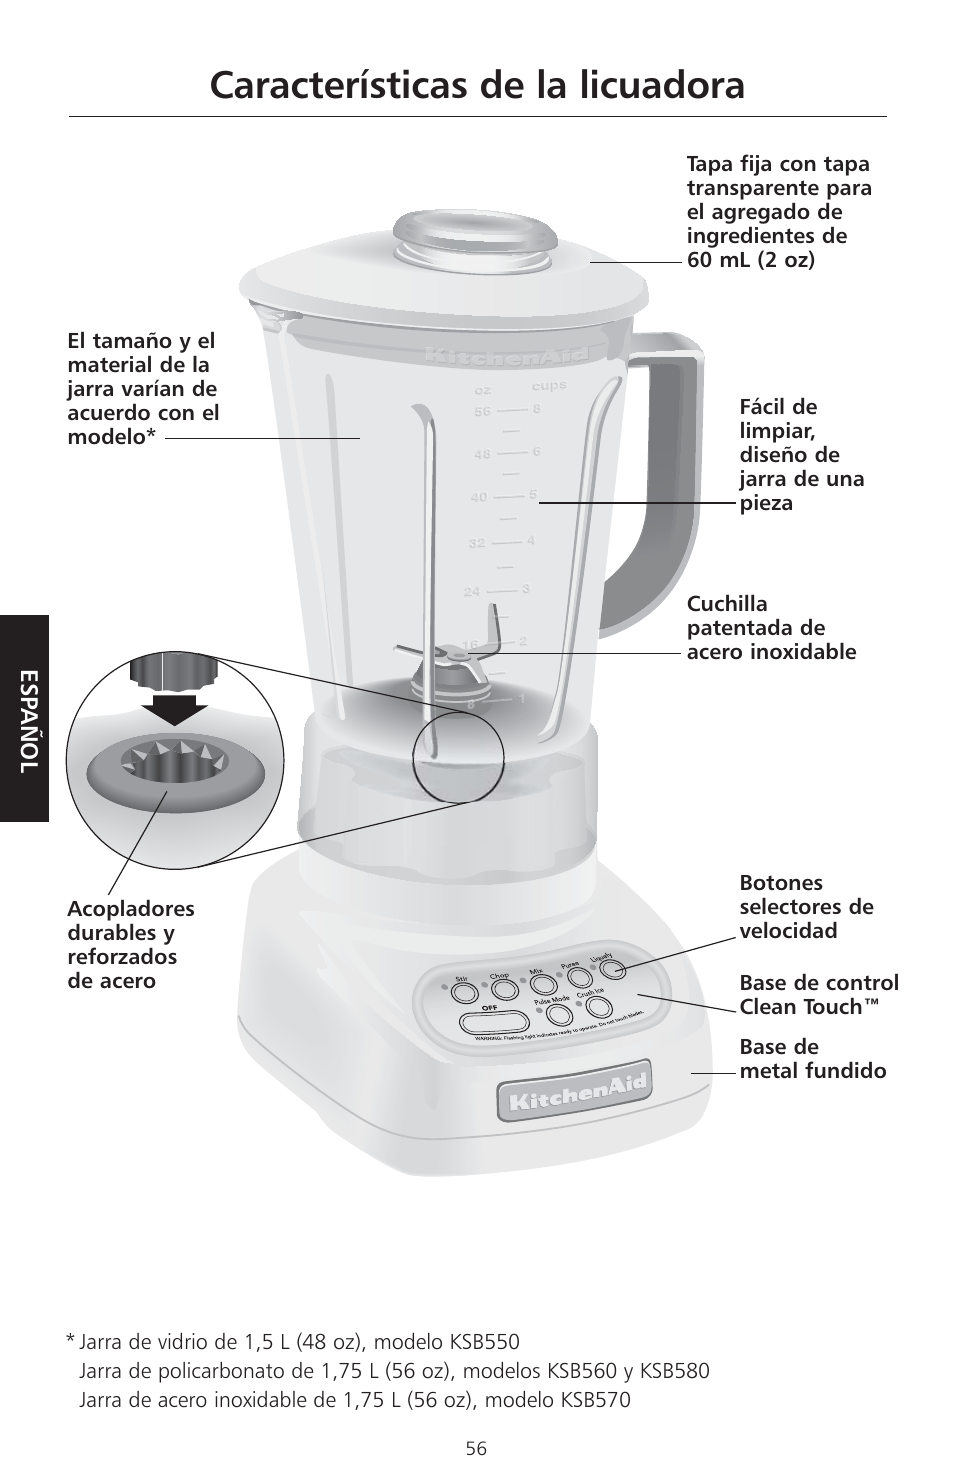 caracter sticas de la licuadora kitchenaid ksb560 user manual rh manualsdir com kitchenaid user manual for model#9755235 kitchenaid user manual lift mixer ksm5